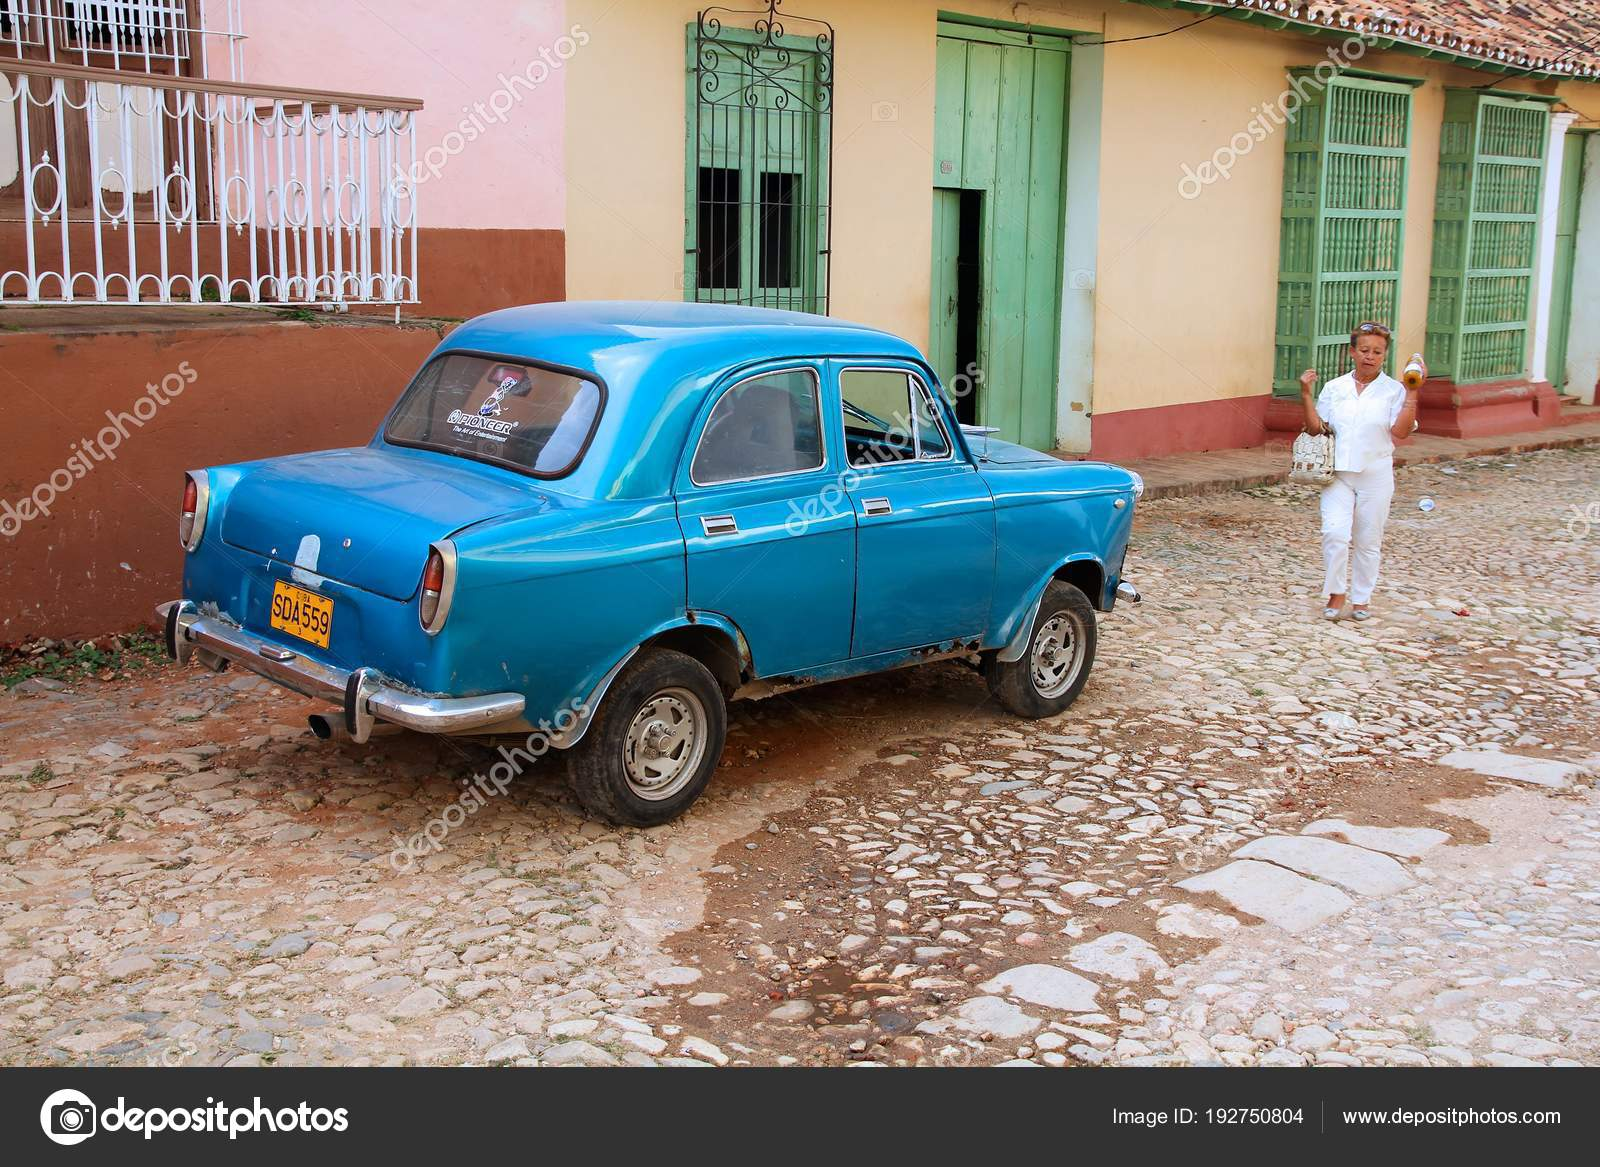 Old car in Cuba – Stock Editorial Photo © tupungato #192750804